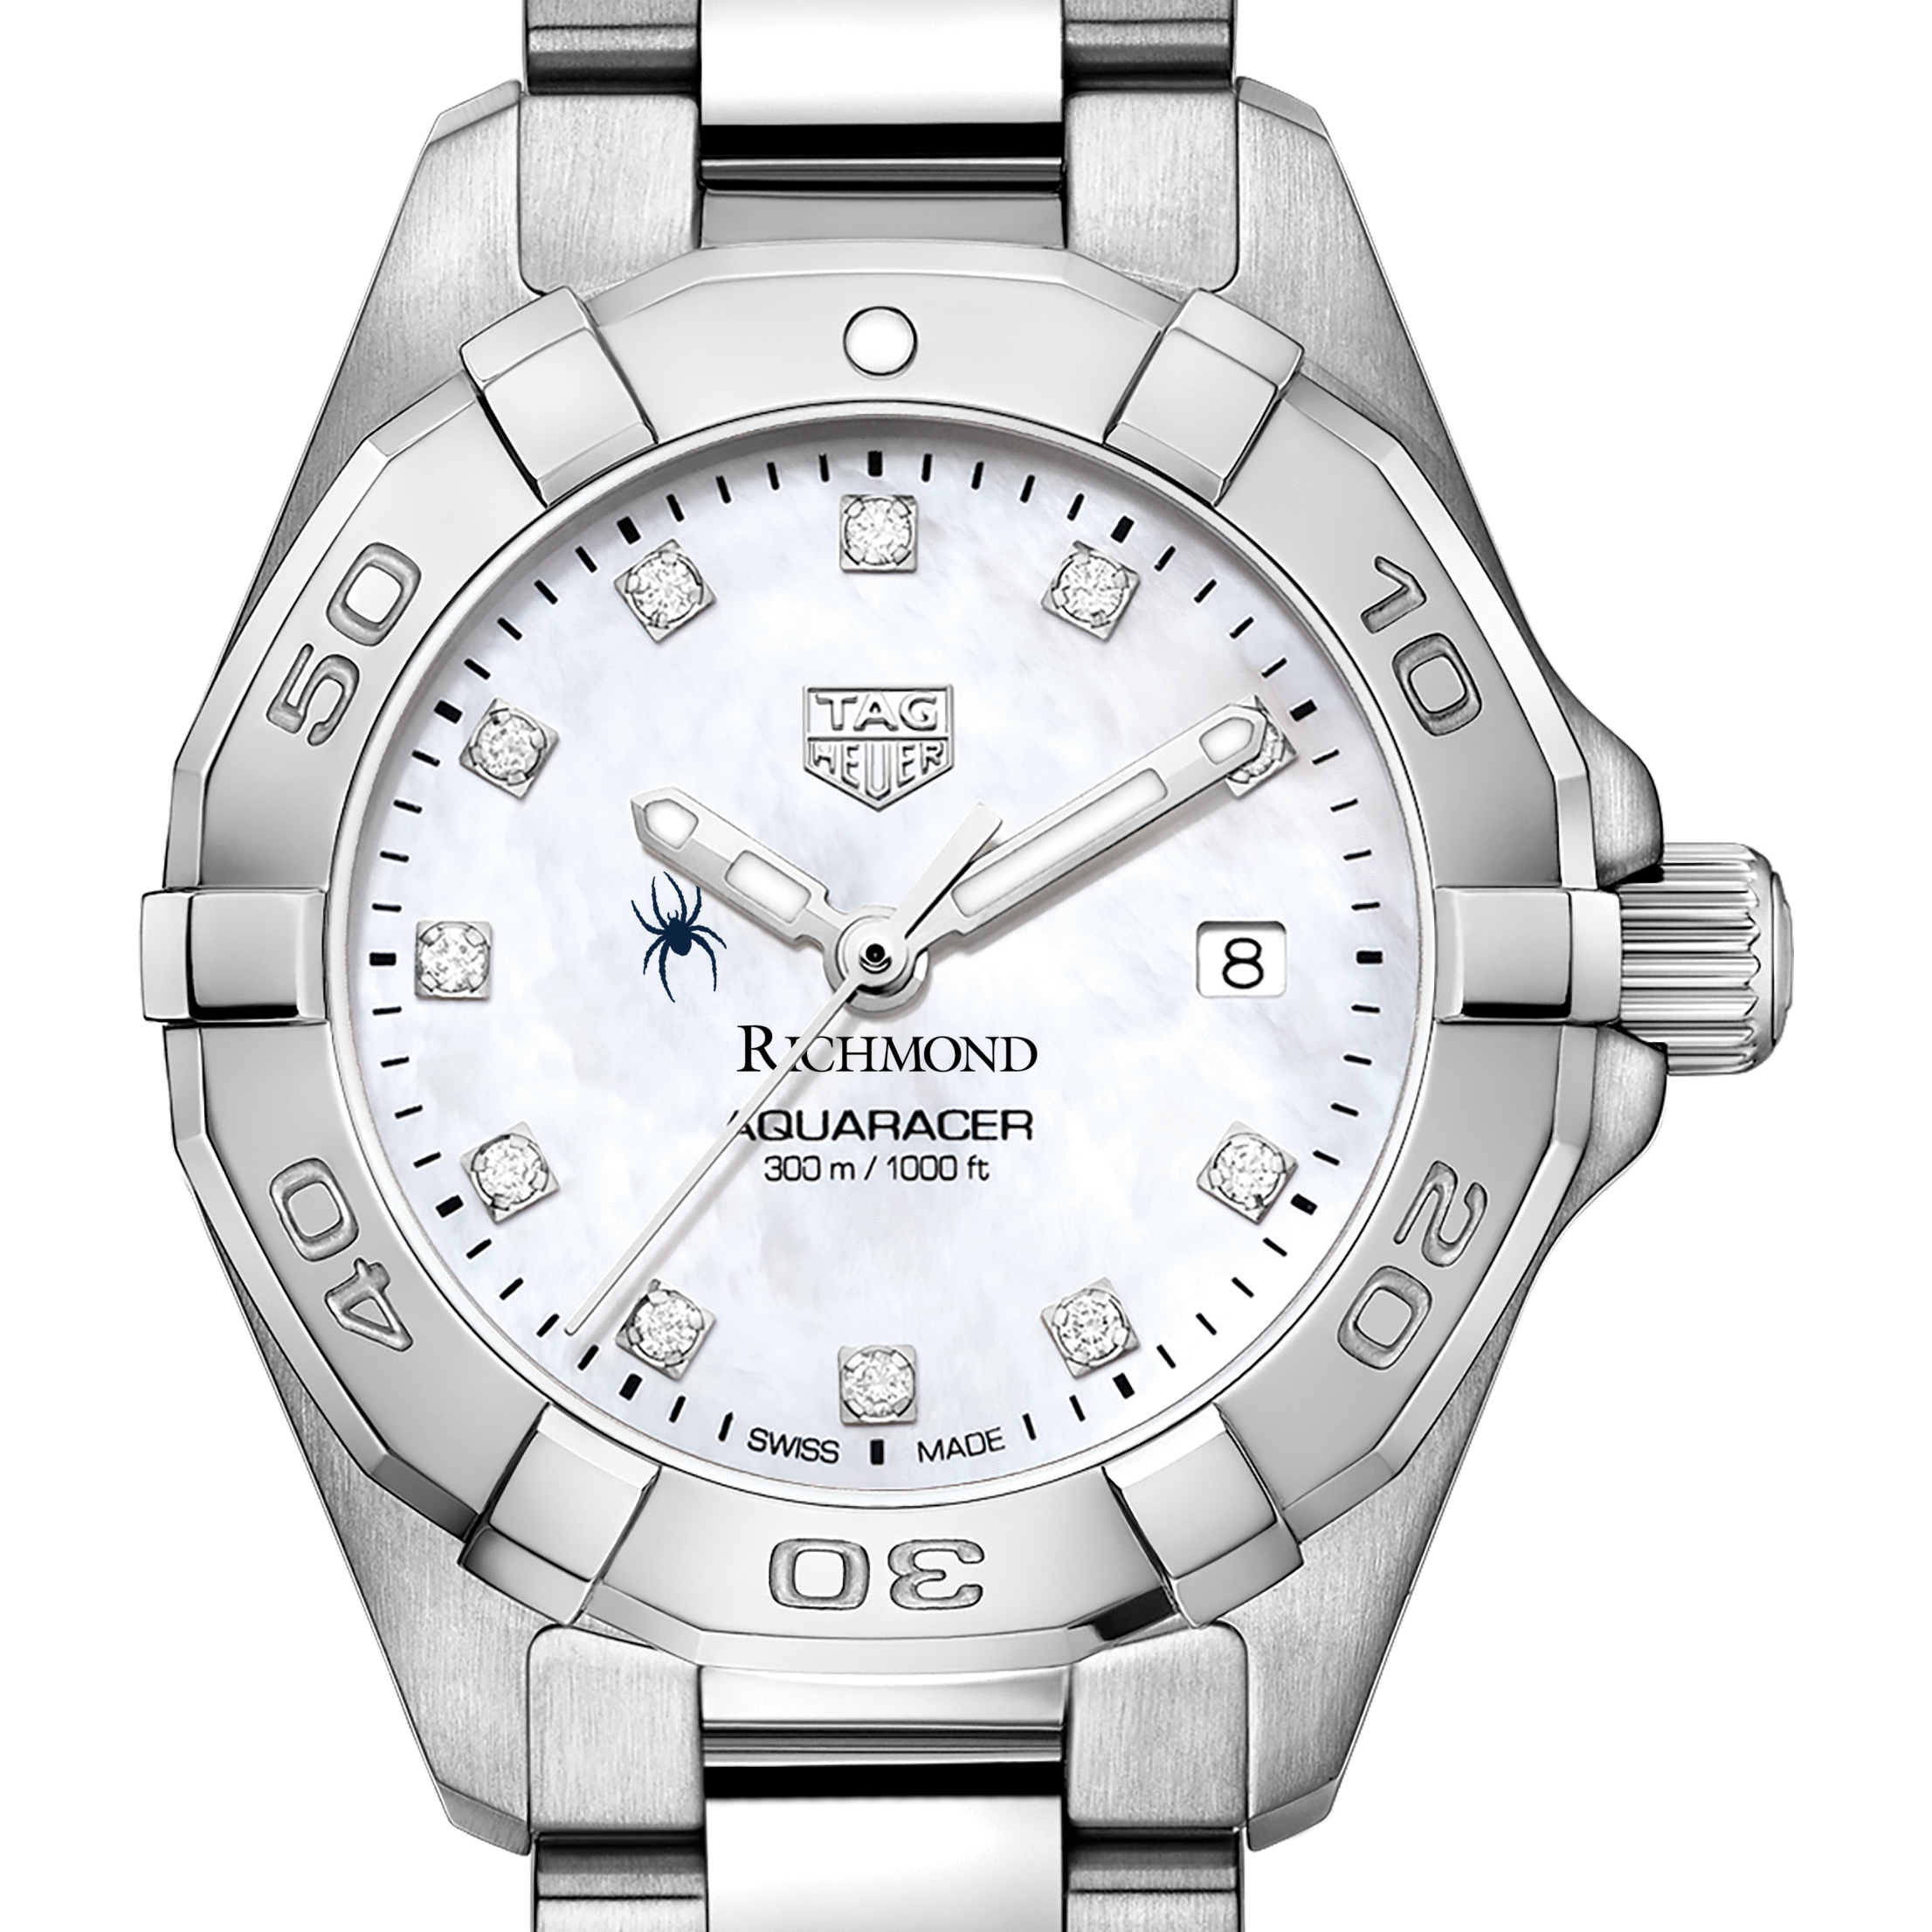 University of Richmond W's TAG Heuer Steel Aquaracer w MOP Dia Dial